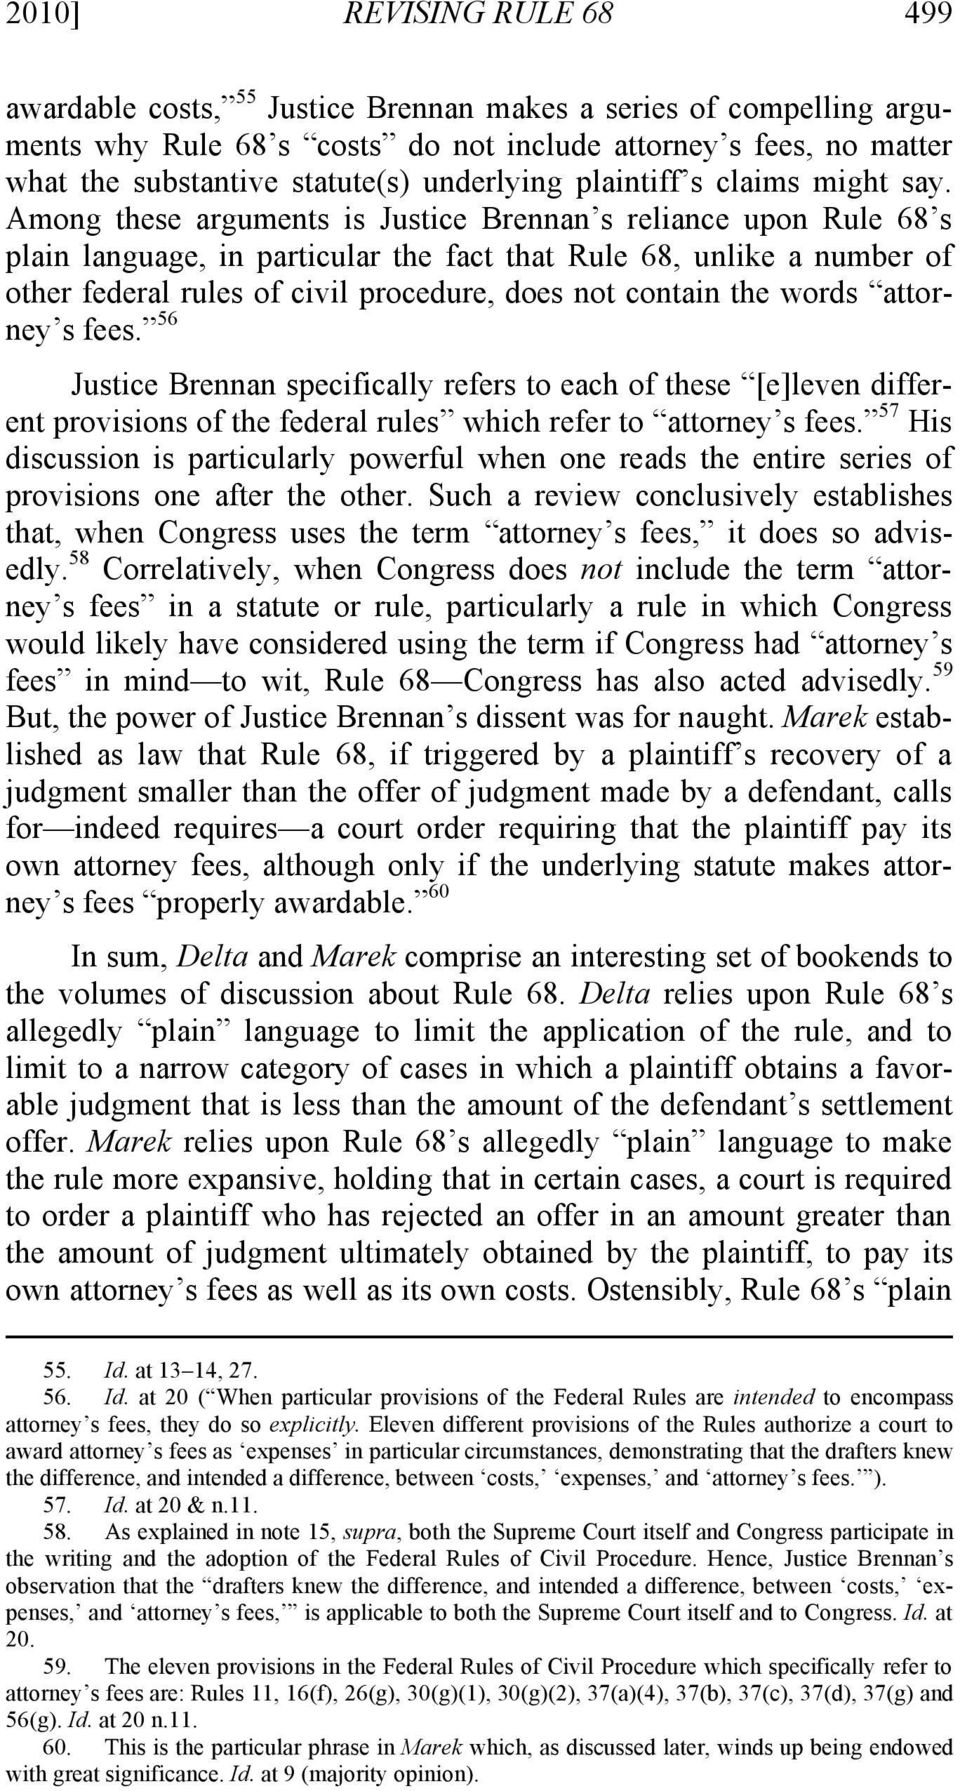 Among these arguments is Justice Brennan s reliance upon Rule 68 s plain language, in particular the fact that Rule 68, unlike a number of other federal rules of civil procedure, does not contain the